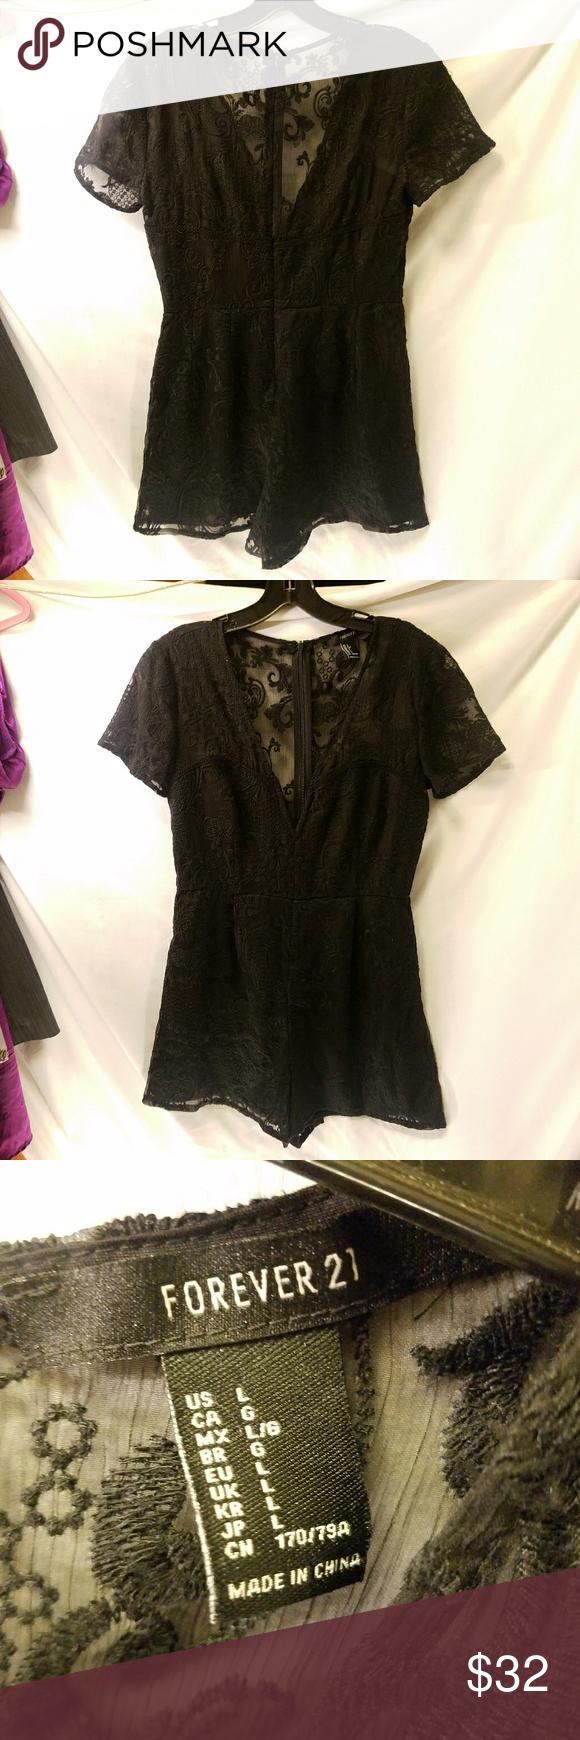 FOREVER 21 romper Size Large Soooo cute!  Black lace romper Zips up back Deep V-neck Eexcellent condition Forever 21 Pants Jumpsuits & Rompers